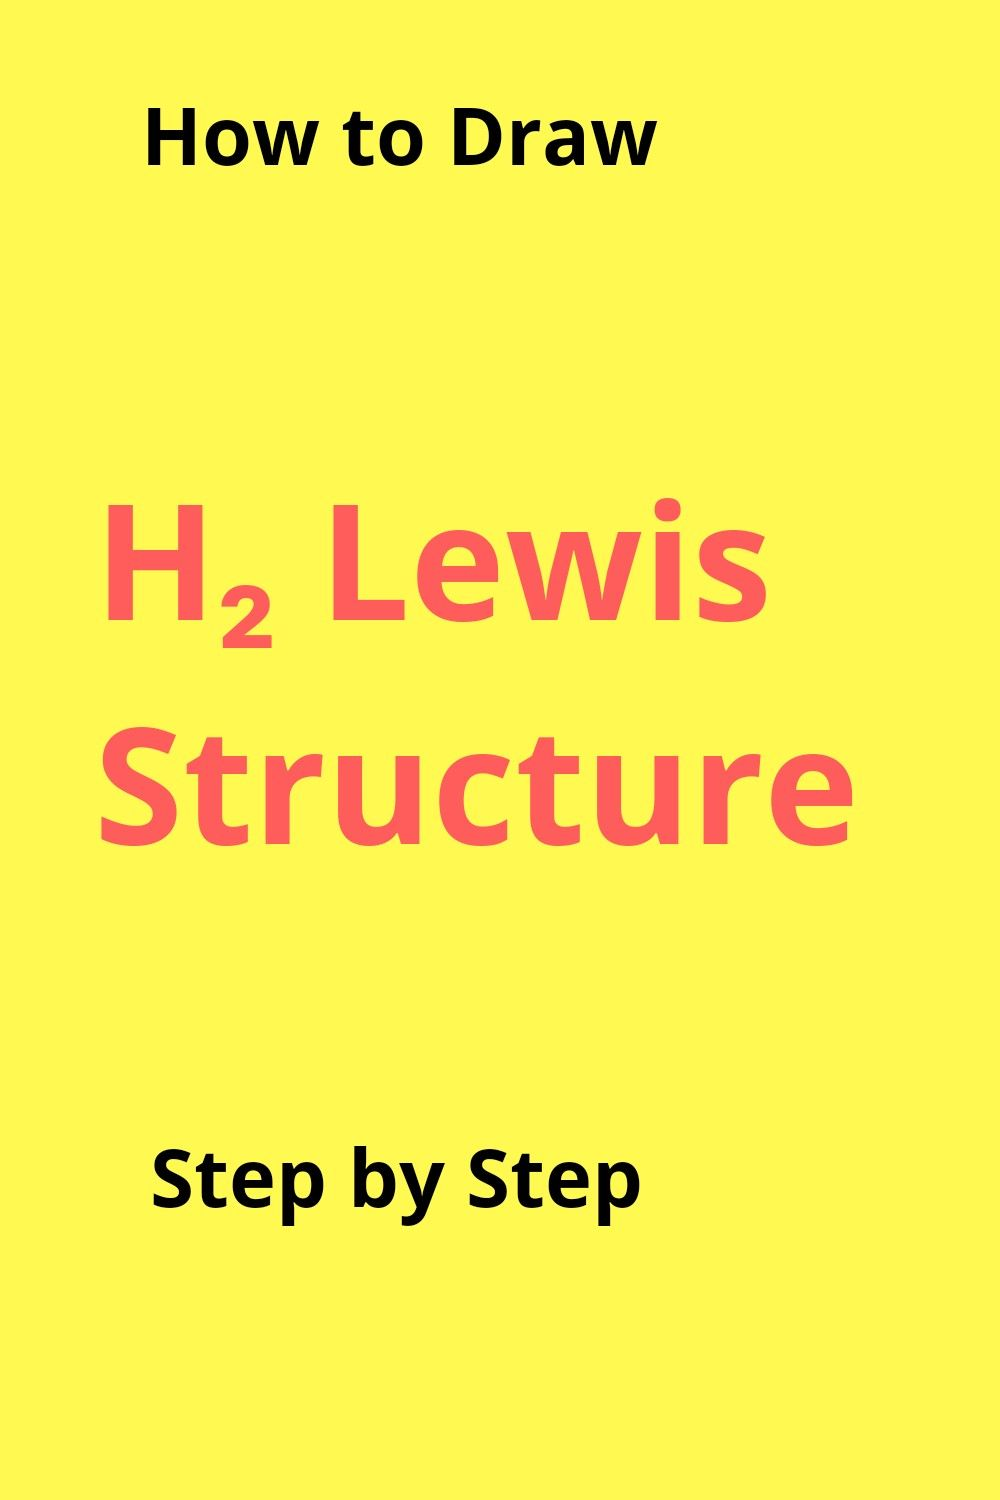 Lewis Structure Of H2s : lewis, structure, Hydrogen, Lewis, Structure, Lewis,, Chemistry, Worksheets,